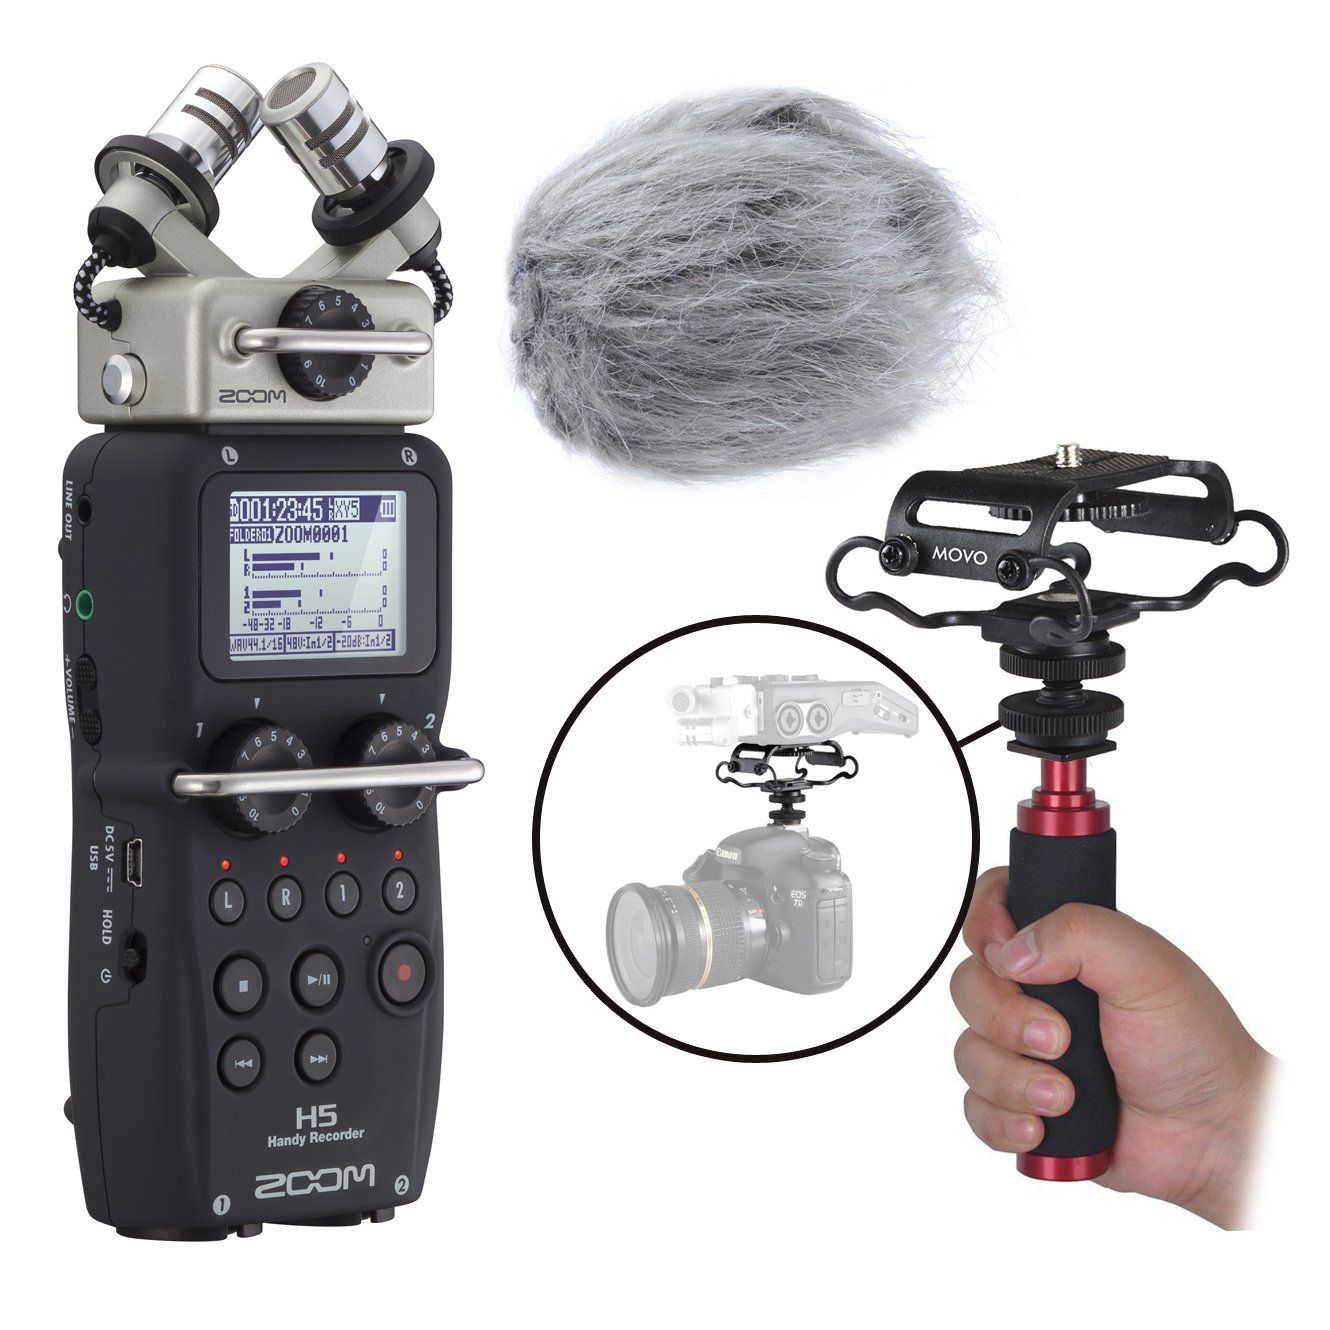 Zoom H5 Four-Track Handy Recorder Kit with Deadcat Windscreen, Shockmount, Camera Mount and Mic Grip by Movo (Image #1)